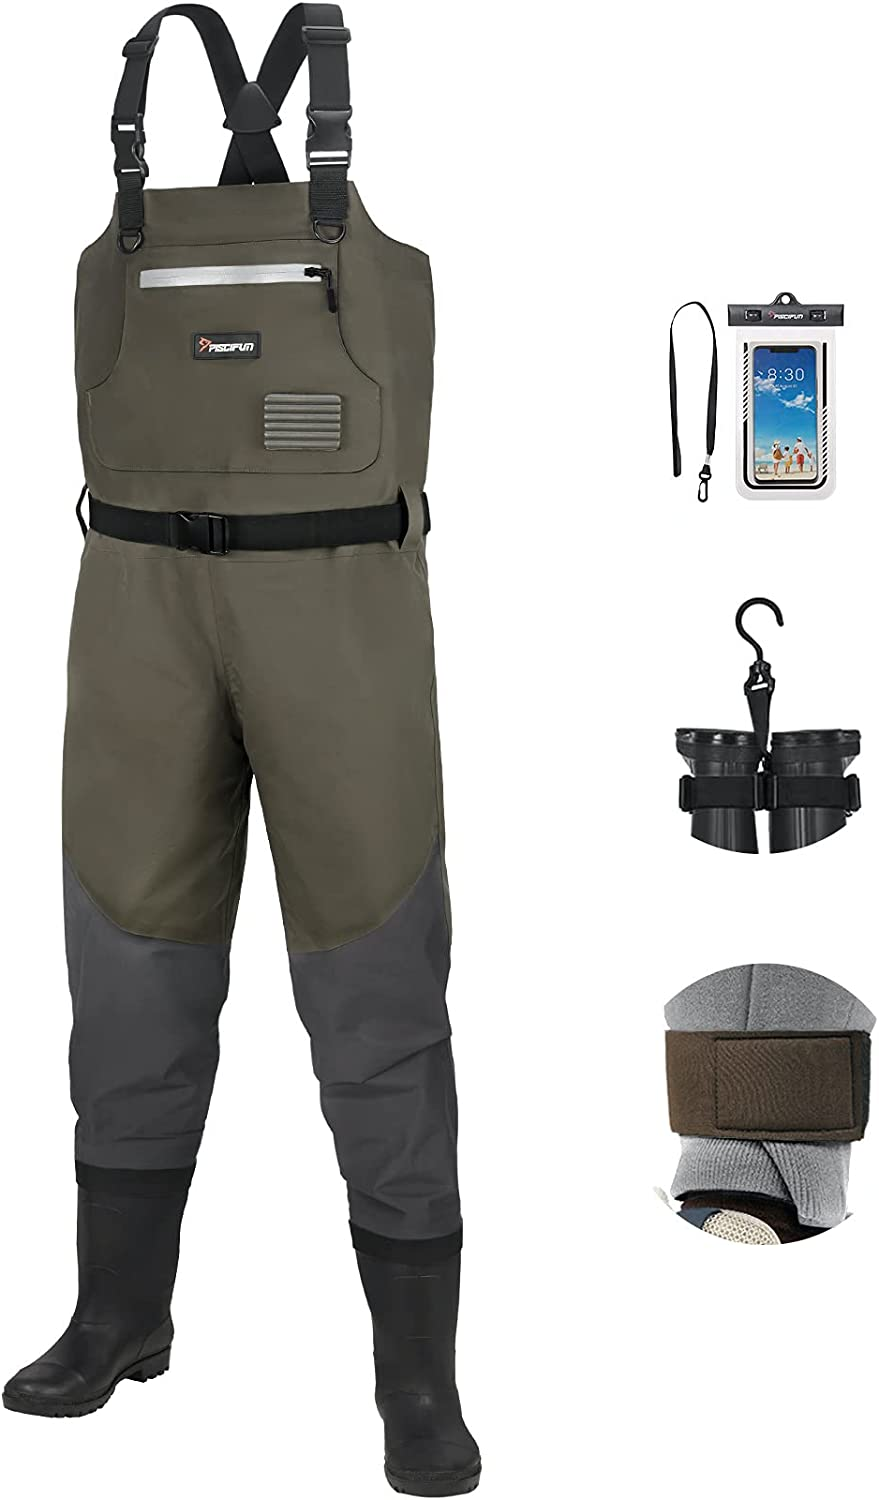 Piscifun BX Breathable Chest Alternative dealer Waders W Super special price with Boots Bootfoot